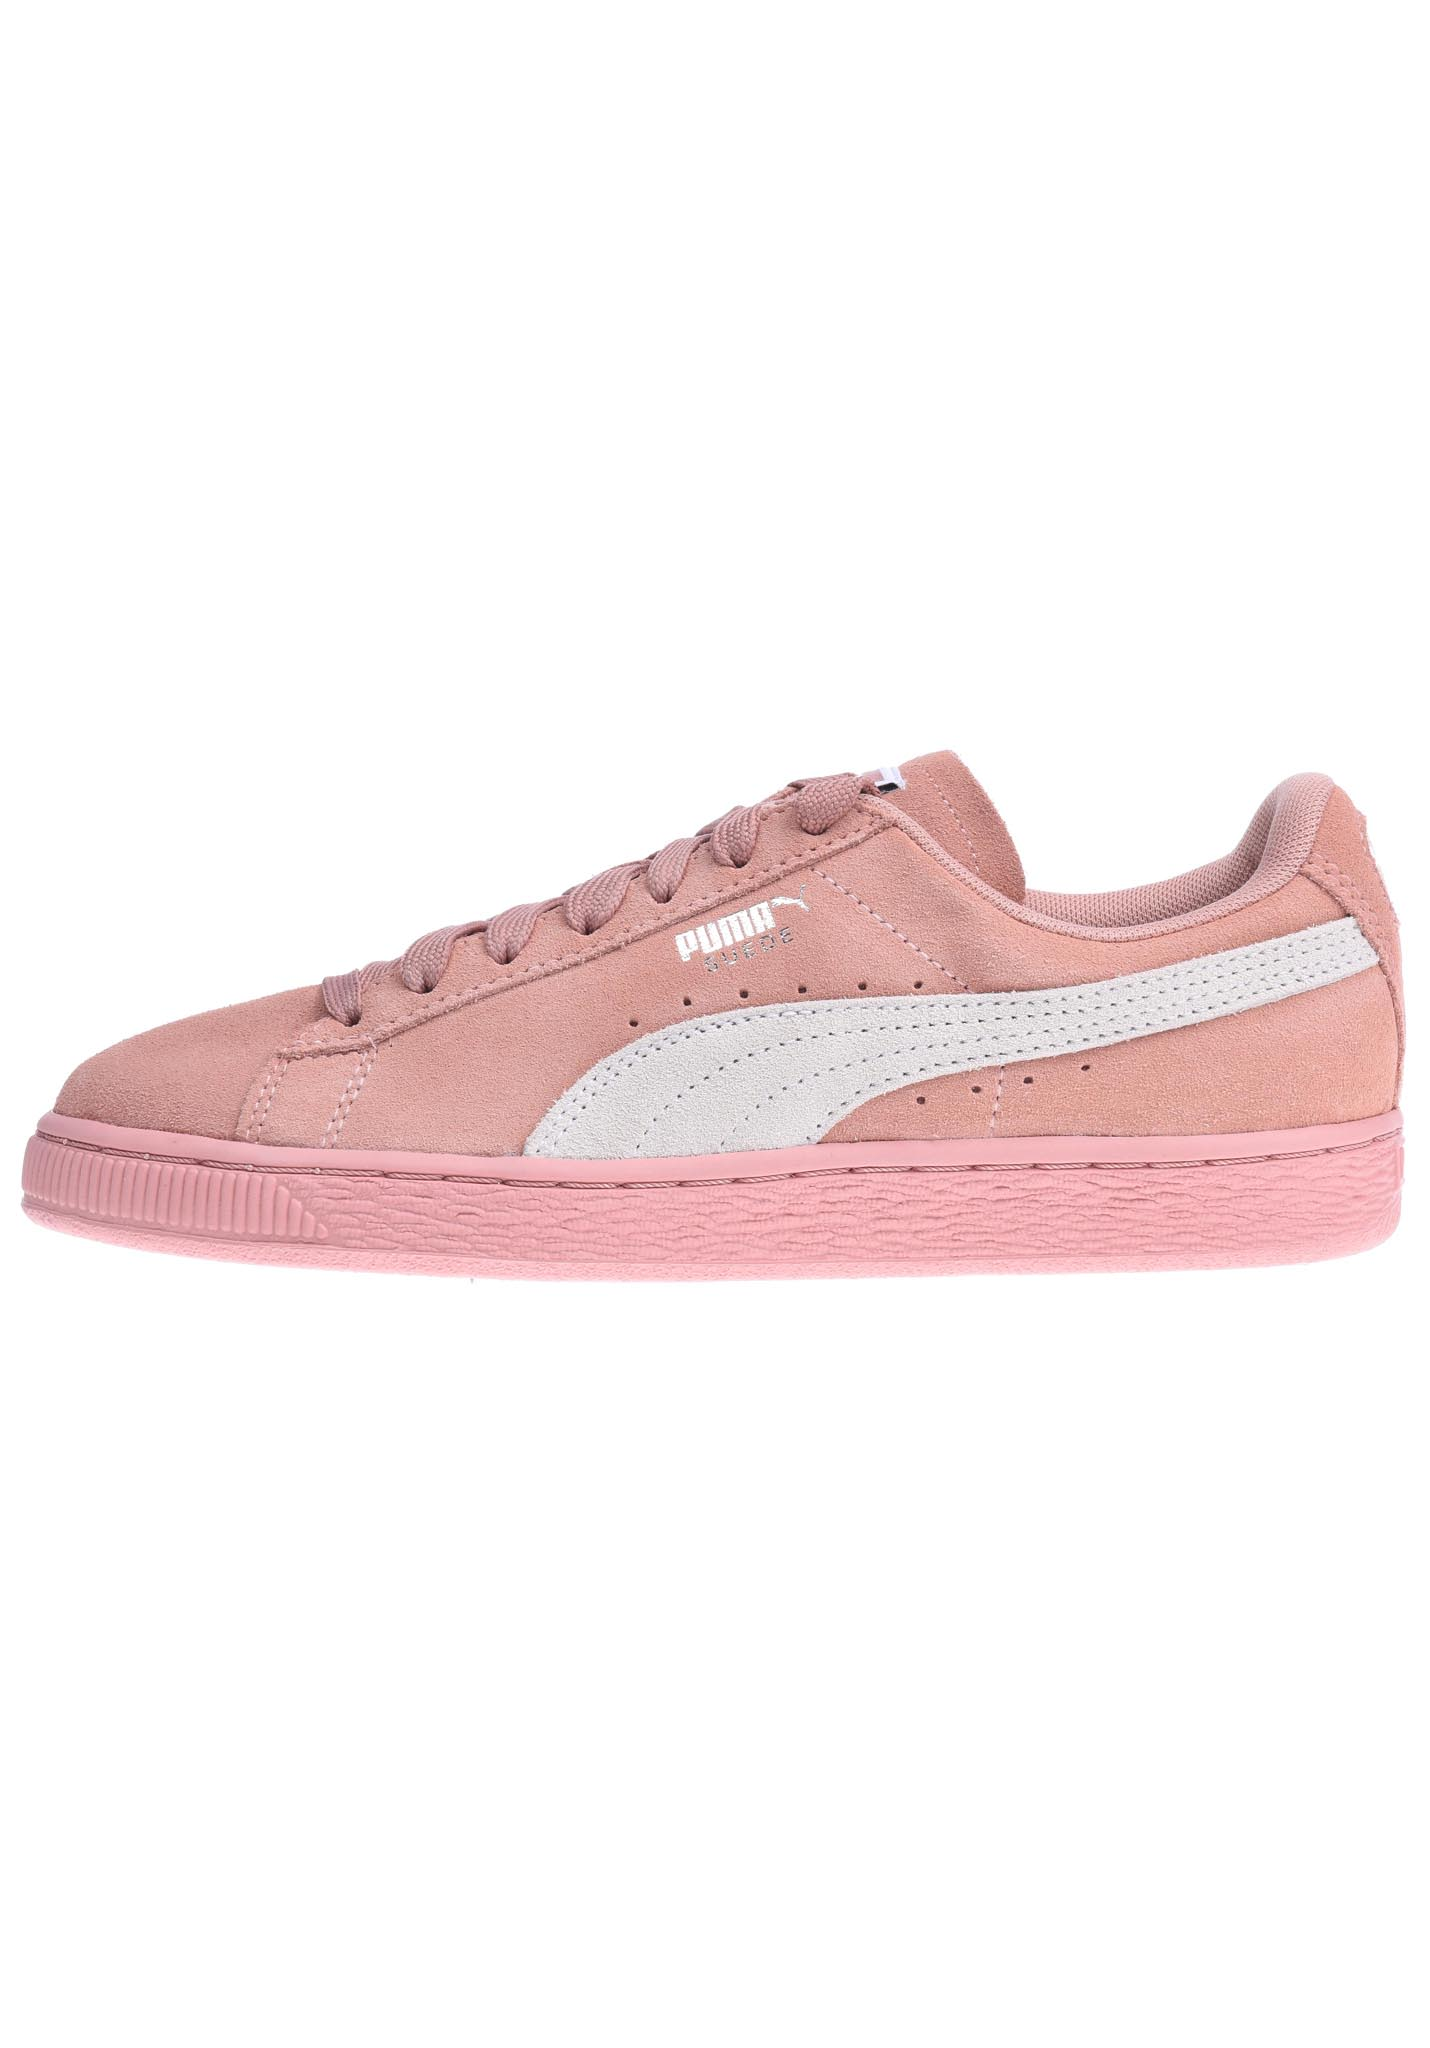 Puma Suede Classic - Sneakers for Women - Pink - Planet Sports 921a088785